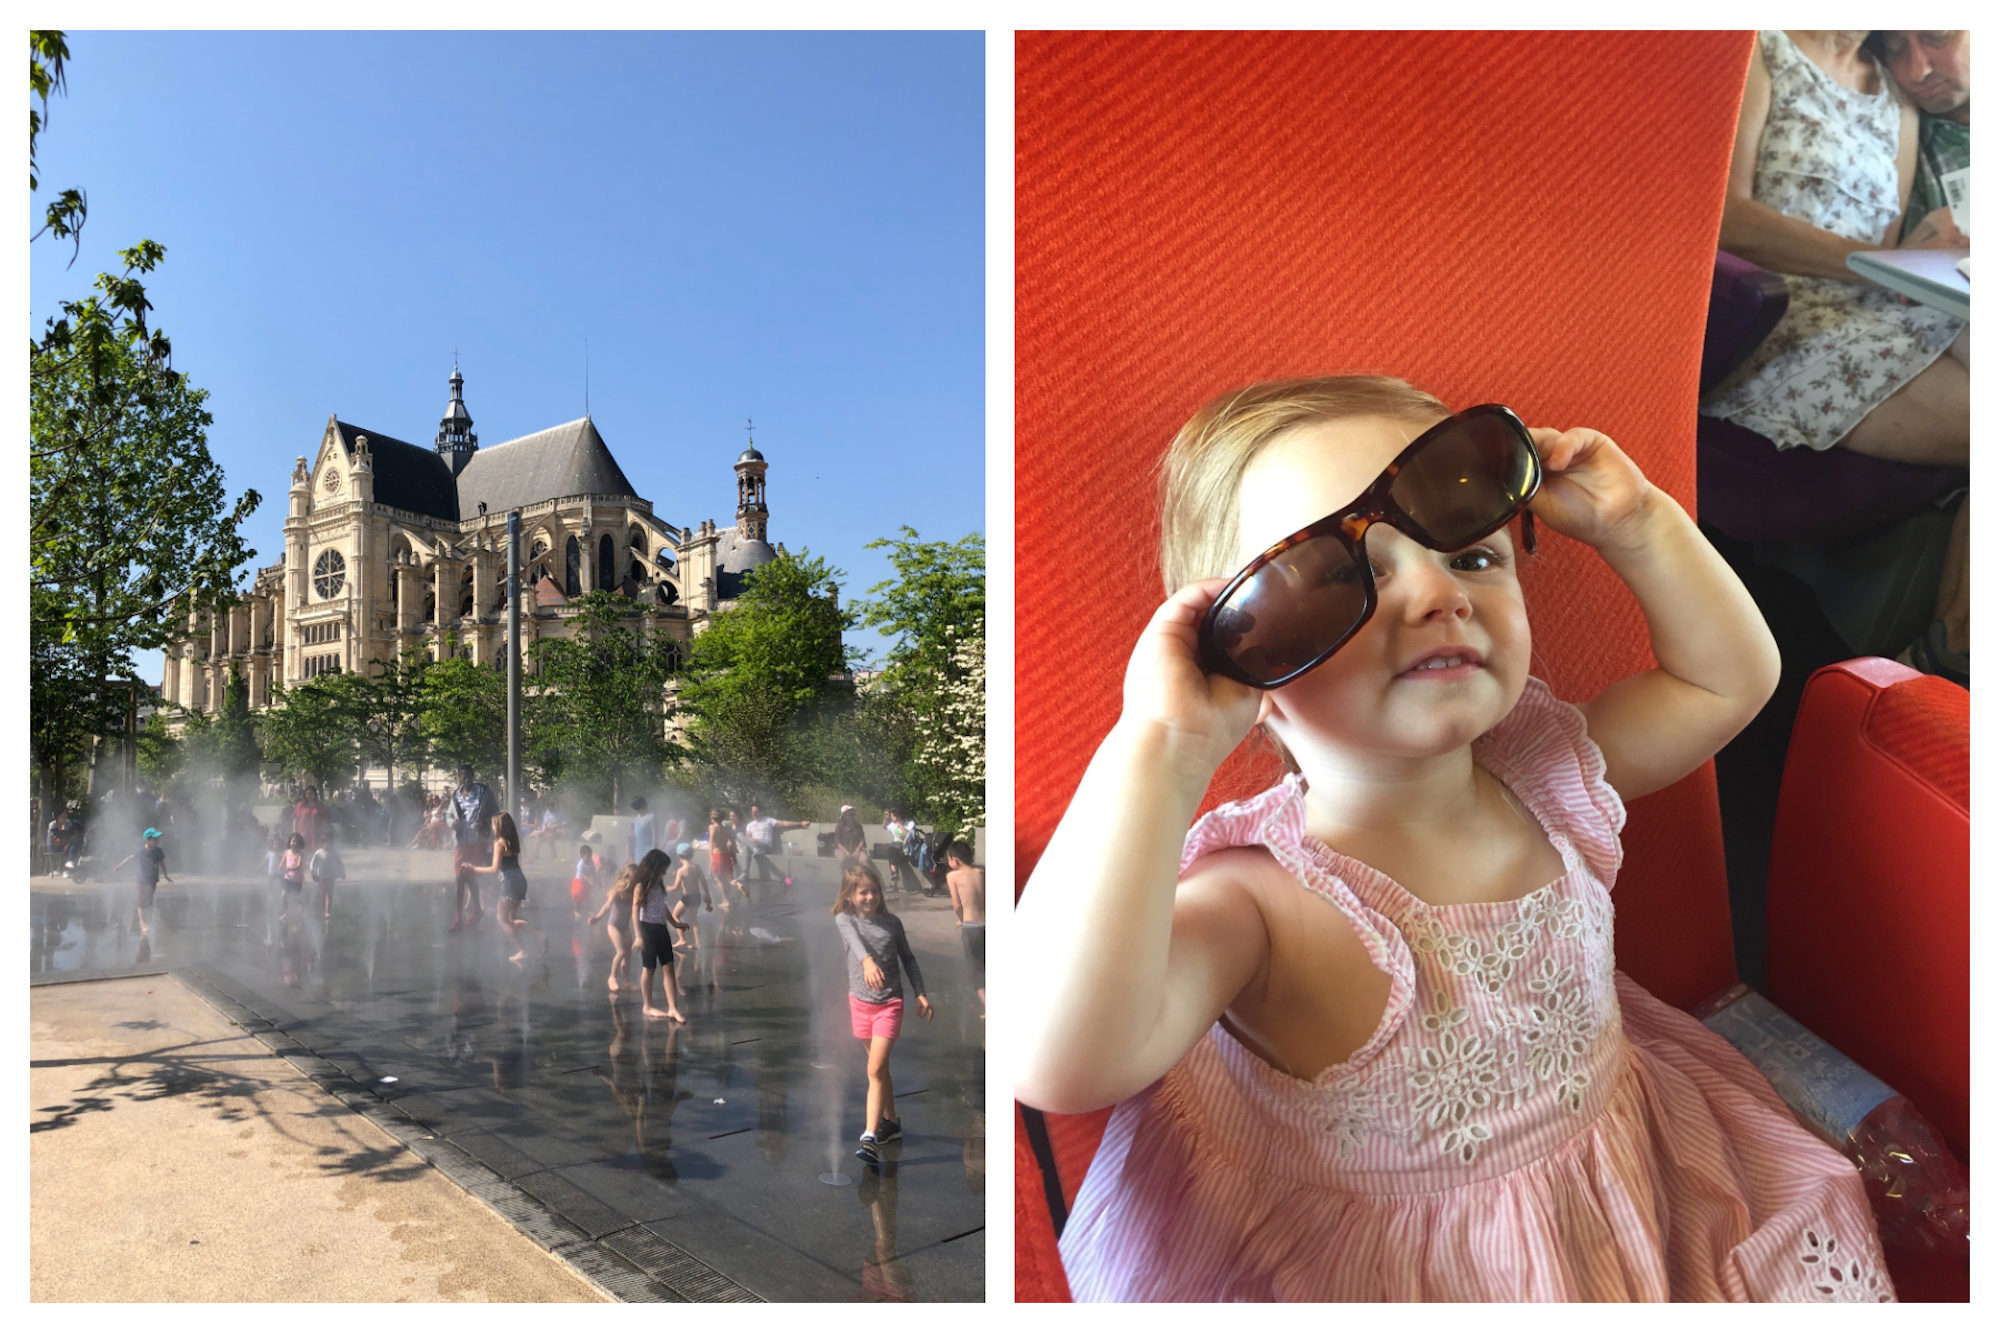 HiP Paris Blog explores what it's like traveling to Paris with babies, which is great fun thanks to the number of fountains to play in (left). A little girl in a pink dress, trying on her mommy's sunglasses (right).